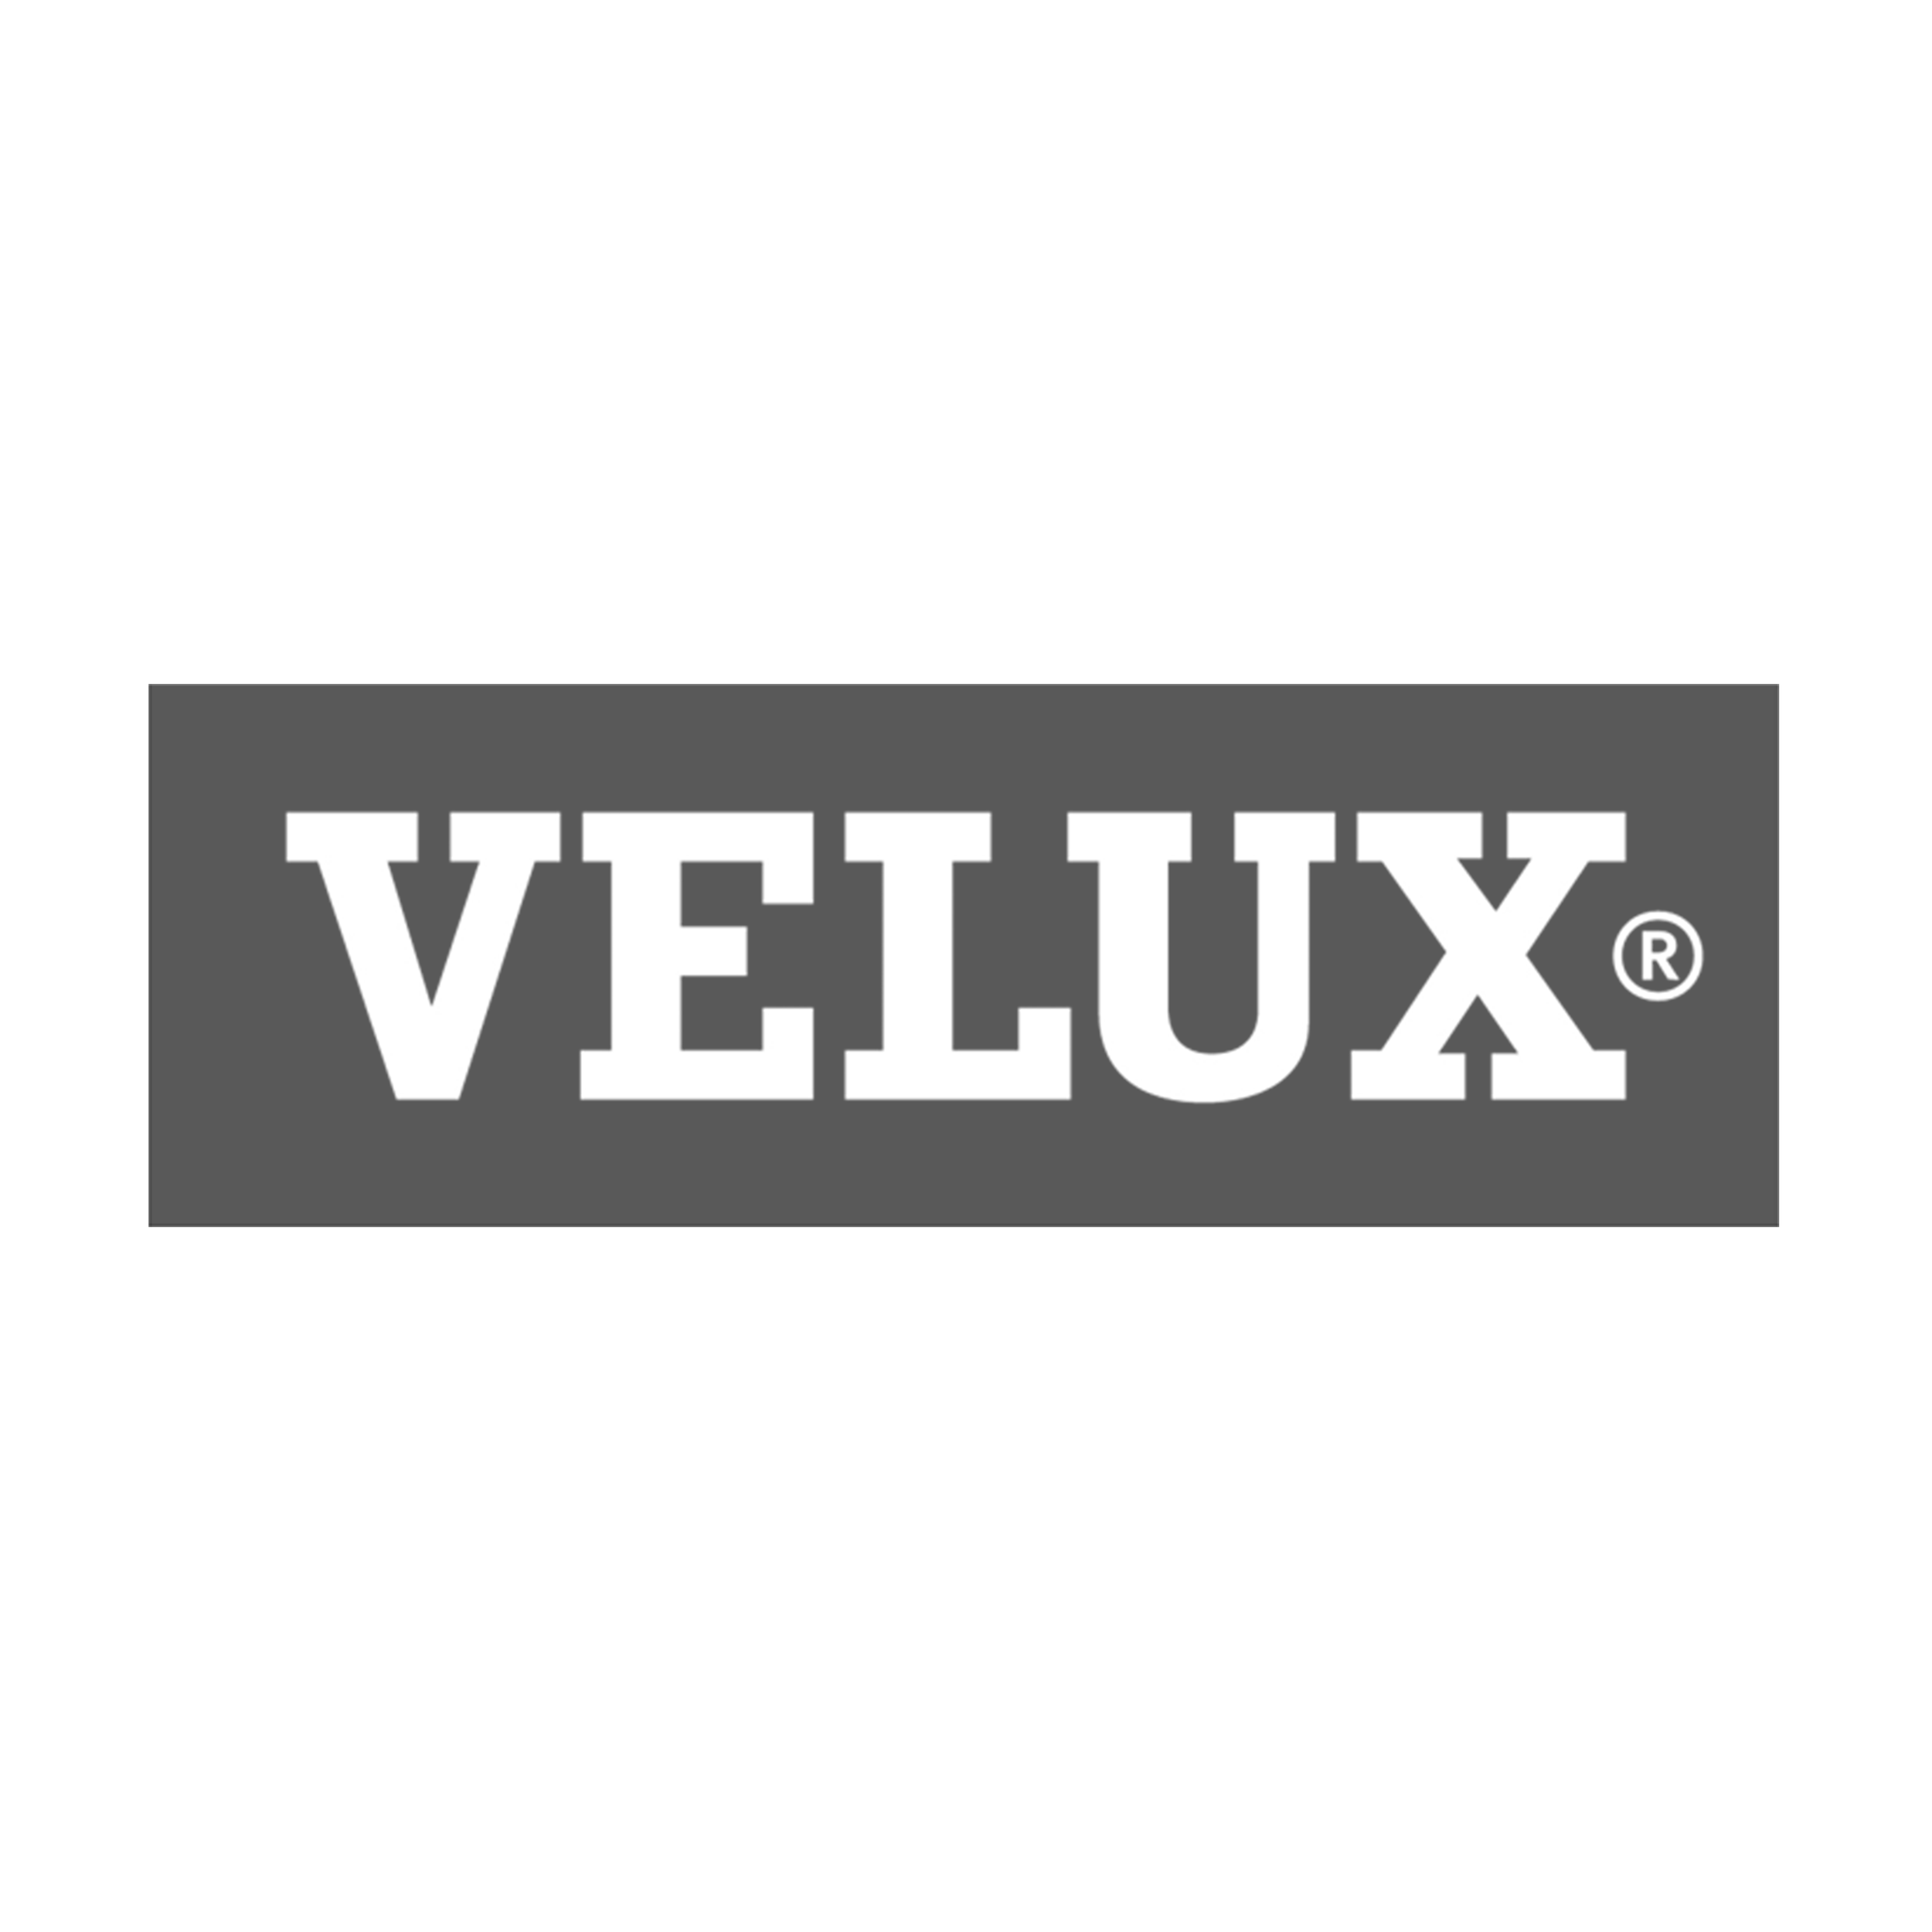 velux logo.png